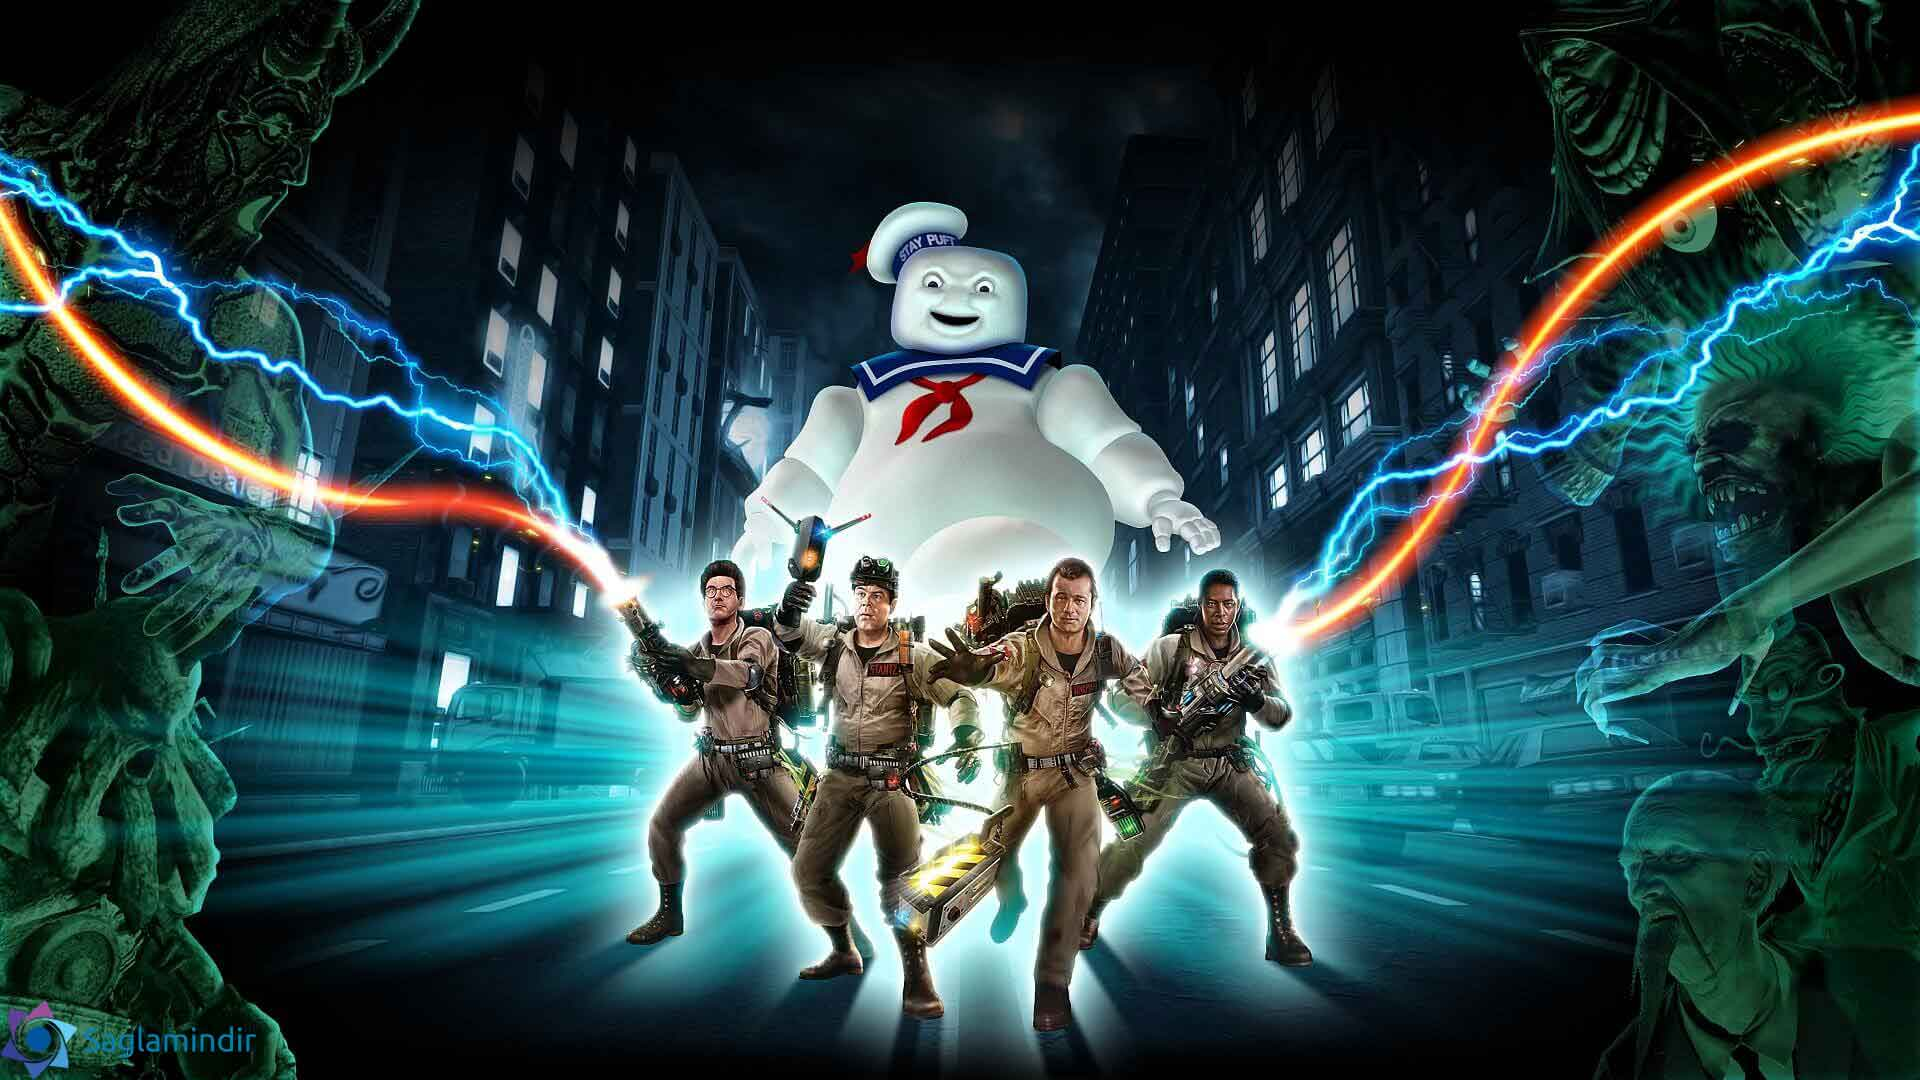 Ghostbusters The Video Game Remastered saglamindir